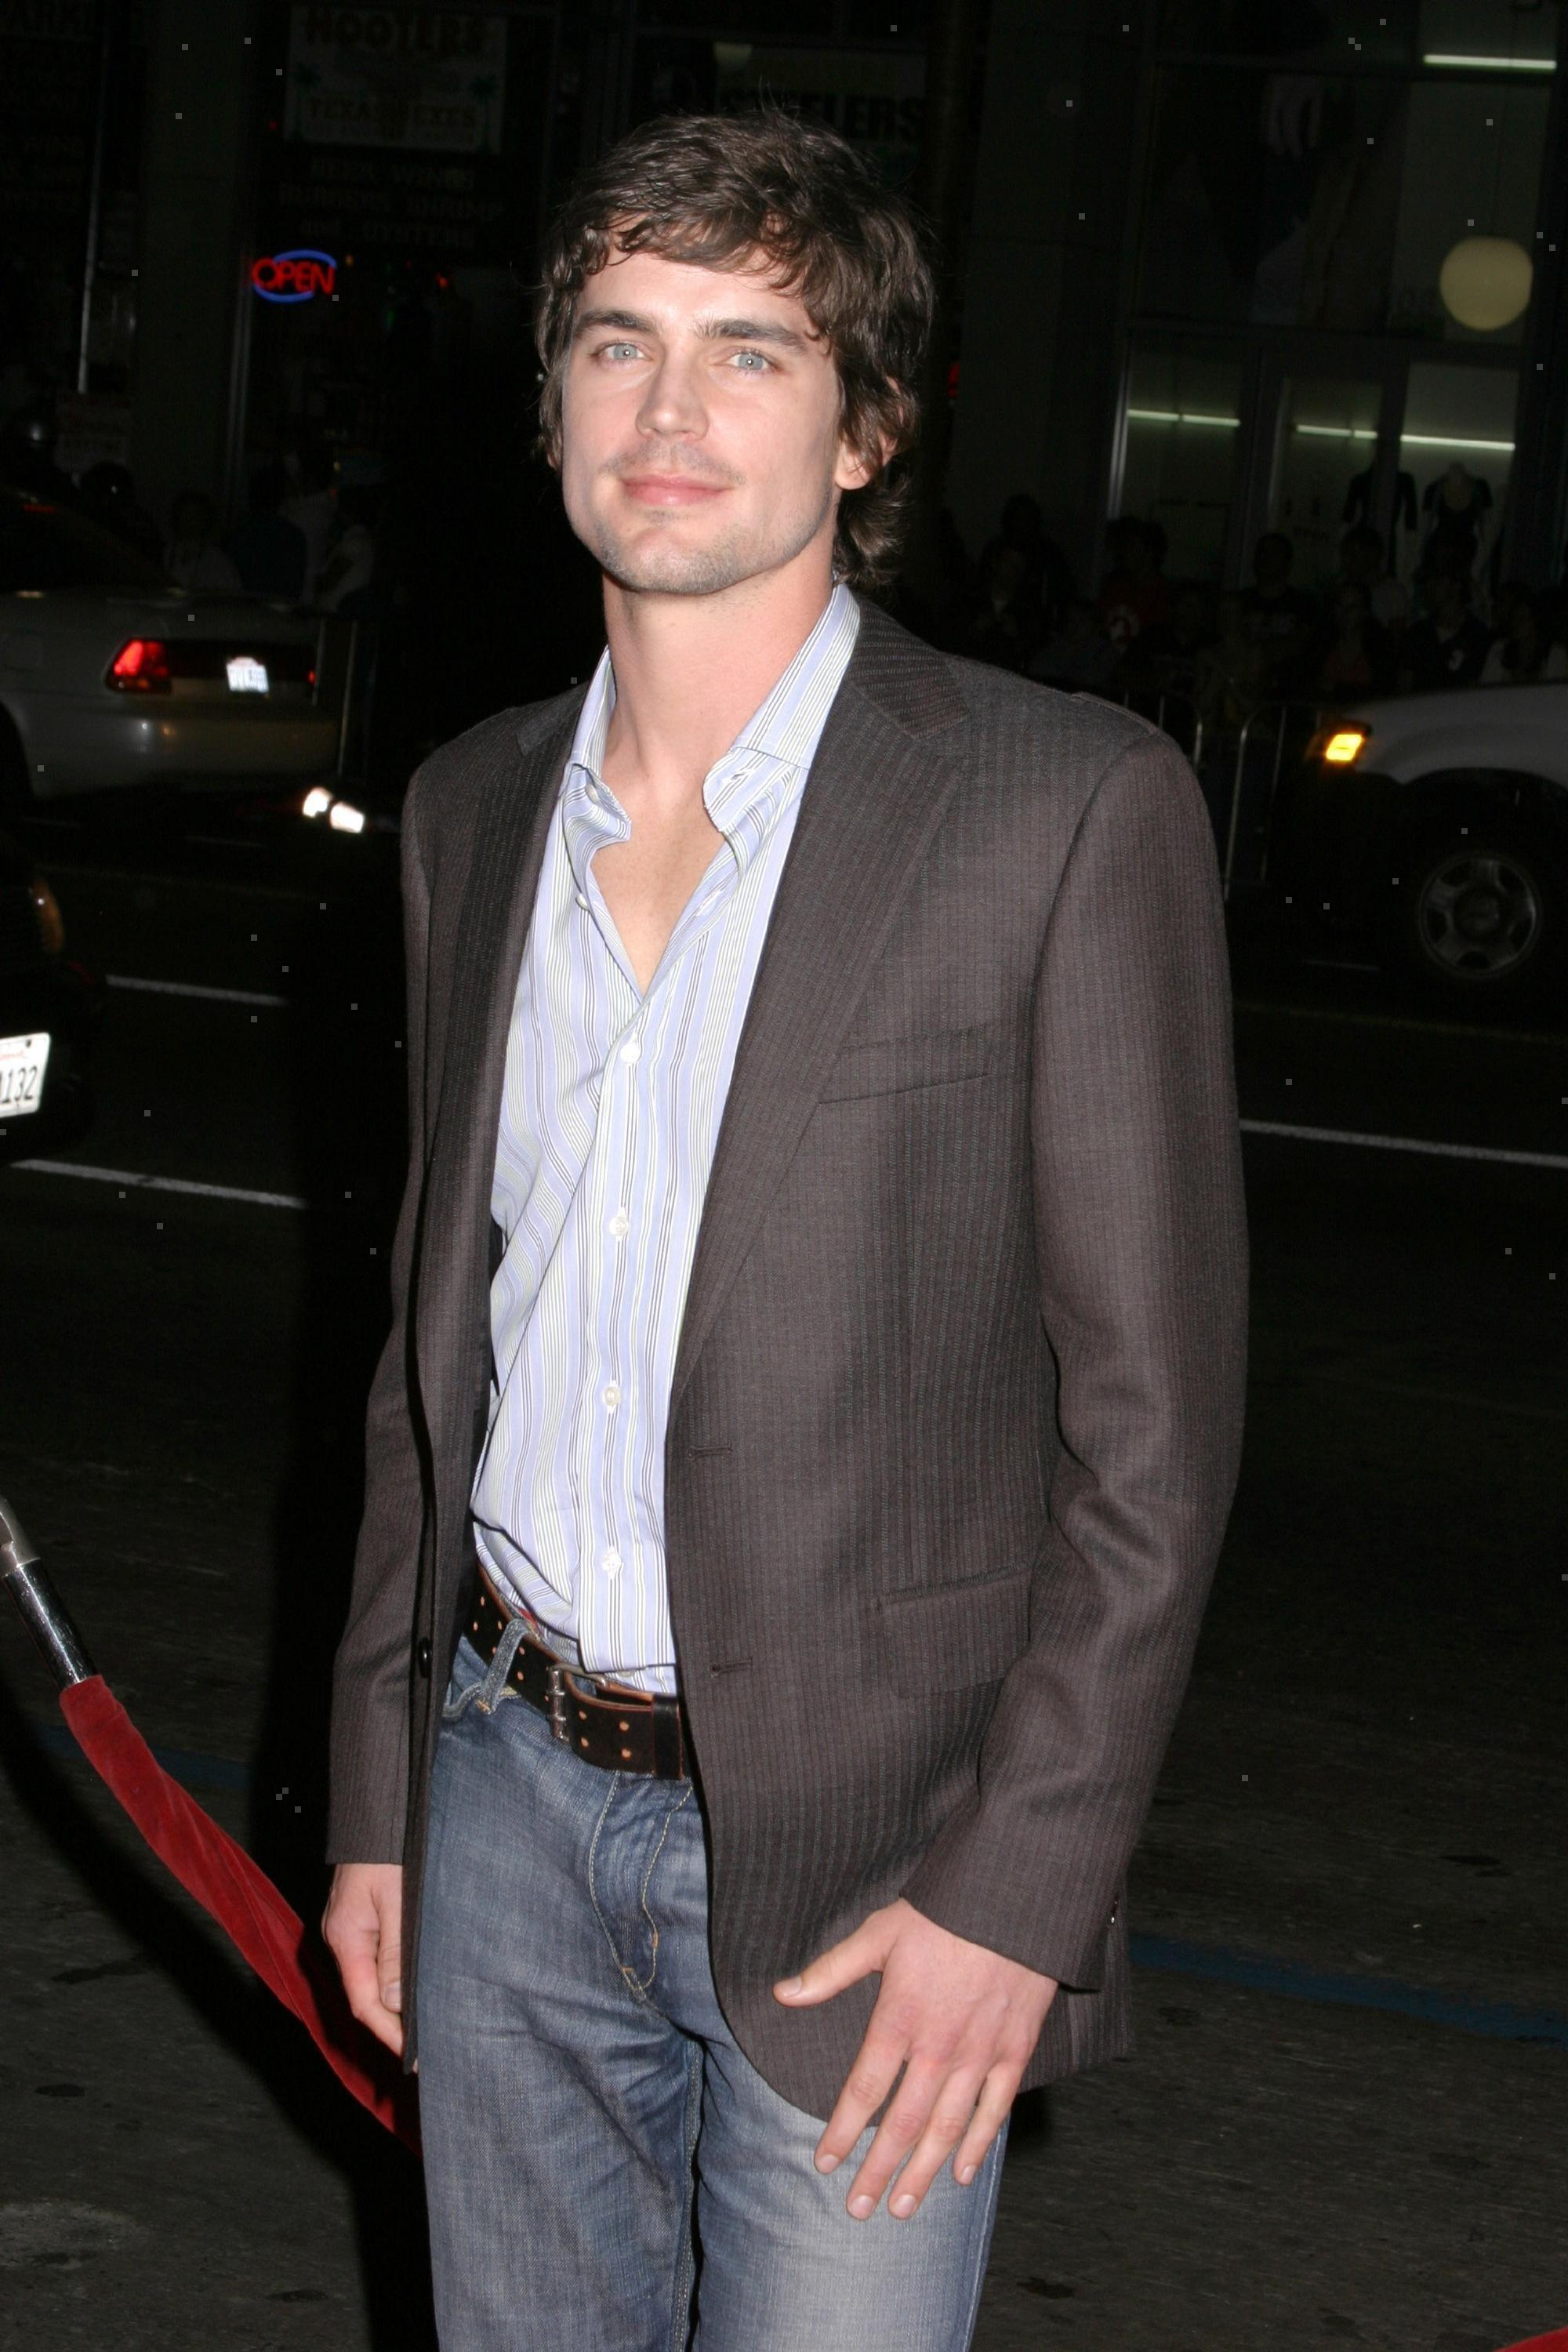 """Matt Bomer attends the premiere of """"The Texas Chainsaw Massacre: The Beginning"""" at Grauman's Chinese Theatre in Hollywood on Oct. 5, 2006."""